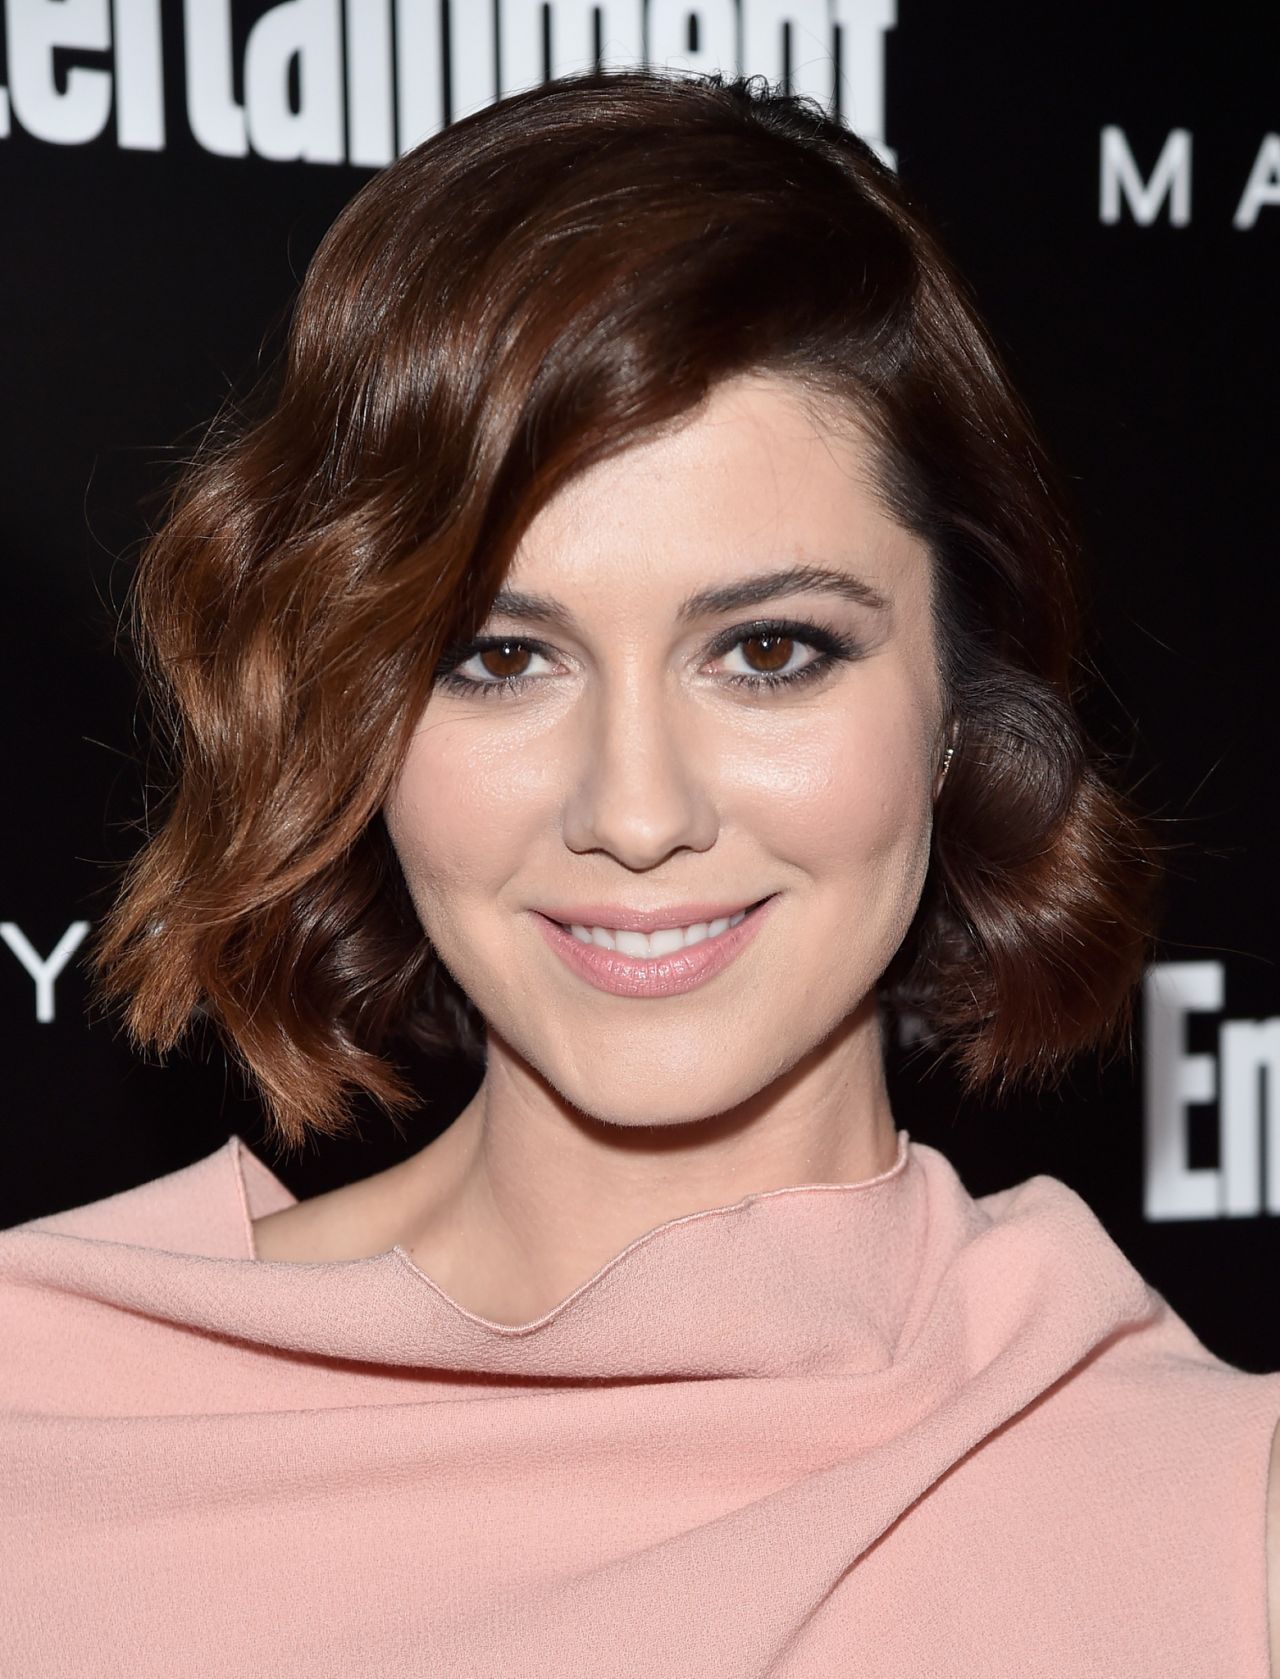 mary-elizabeth-winstead-ew-s-celebration-honoring-the-screen-actors-guild-in-los-angeles-january-2016-7